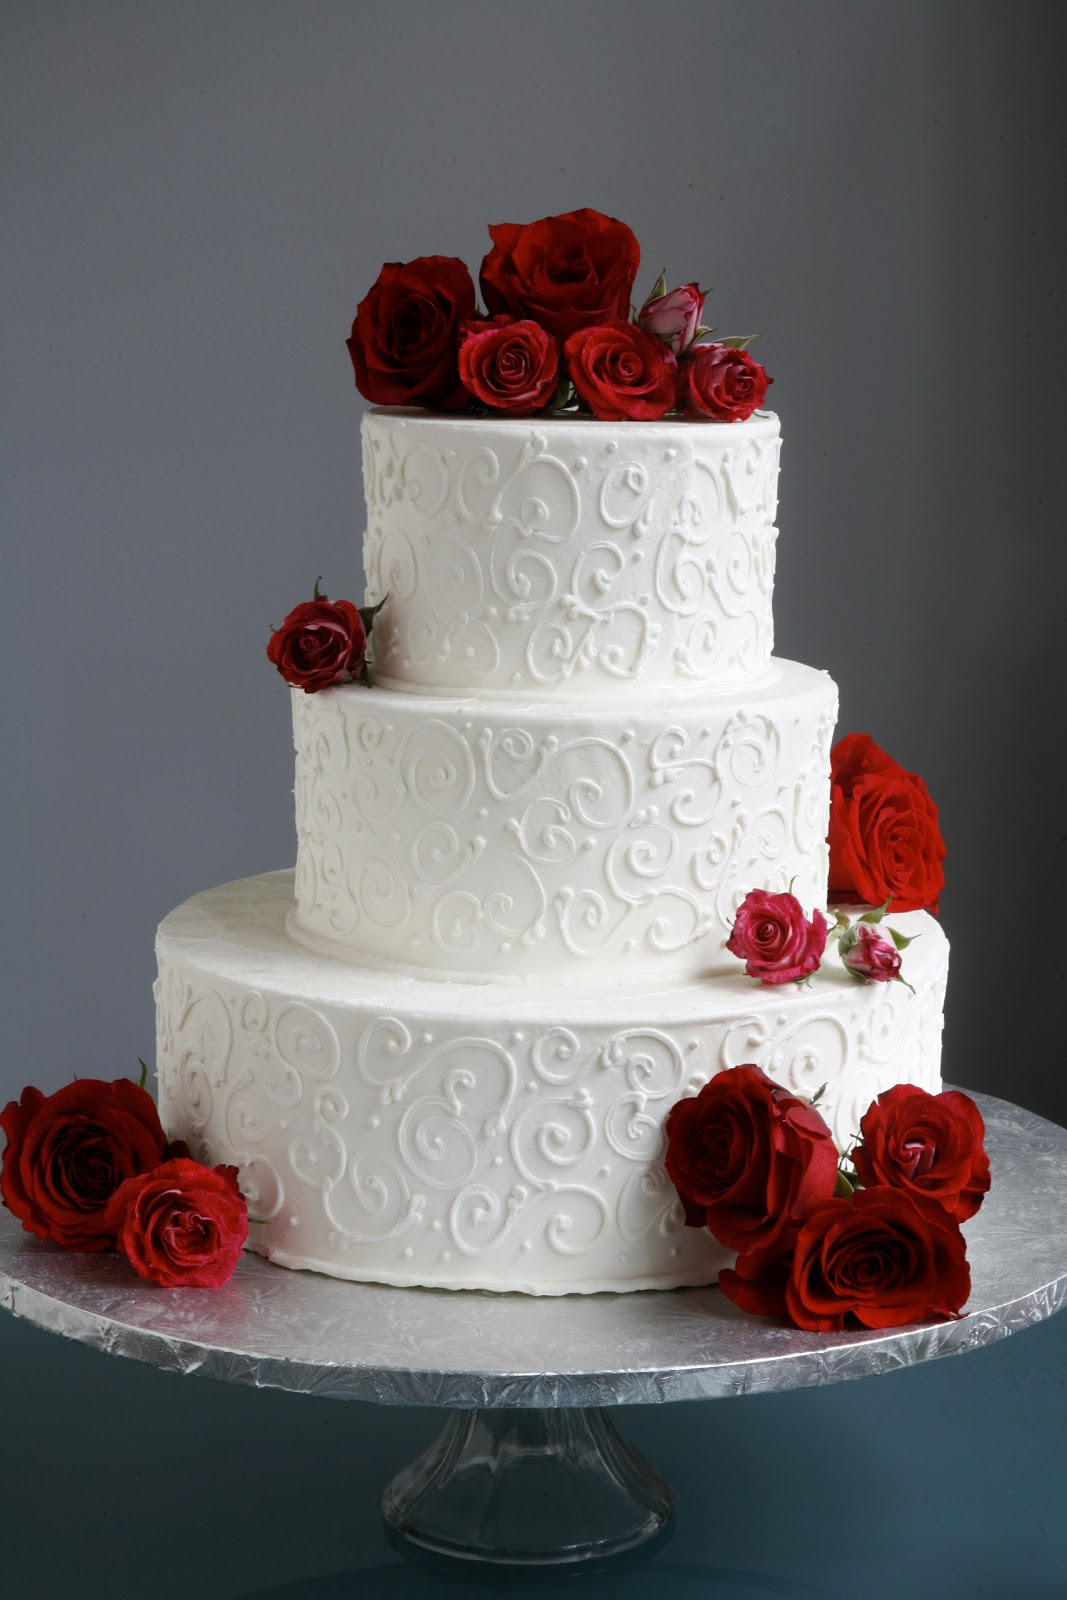 Wedding Cakes with Roses top 20 A Simple Cake Wedding Cake with Fresh Flowers From